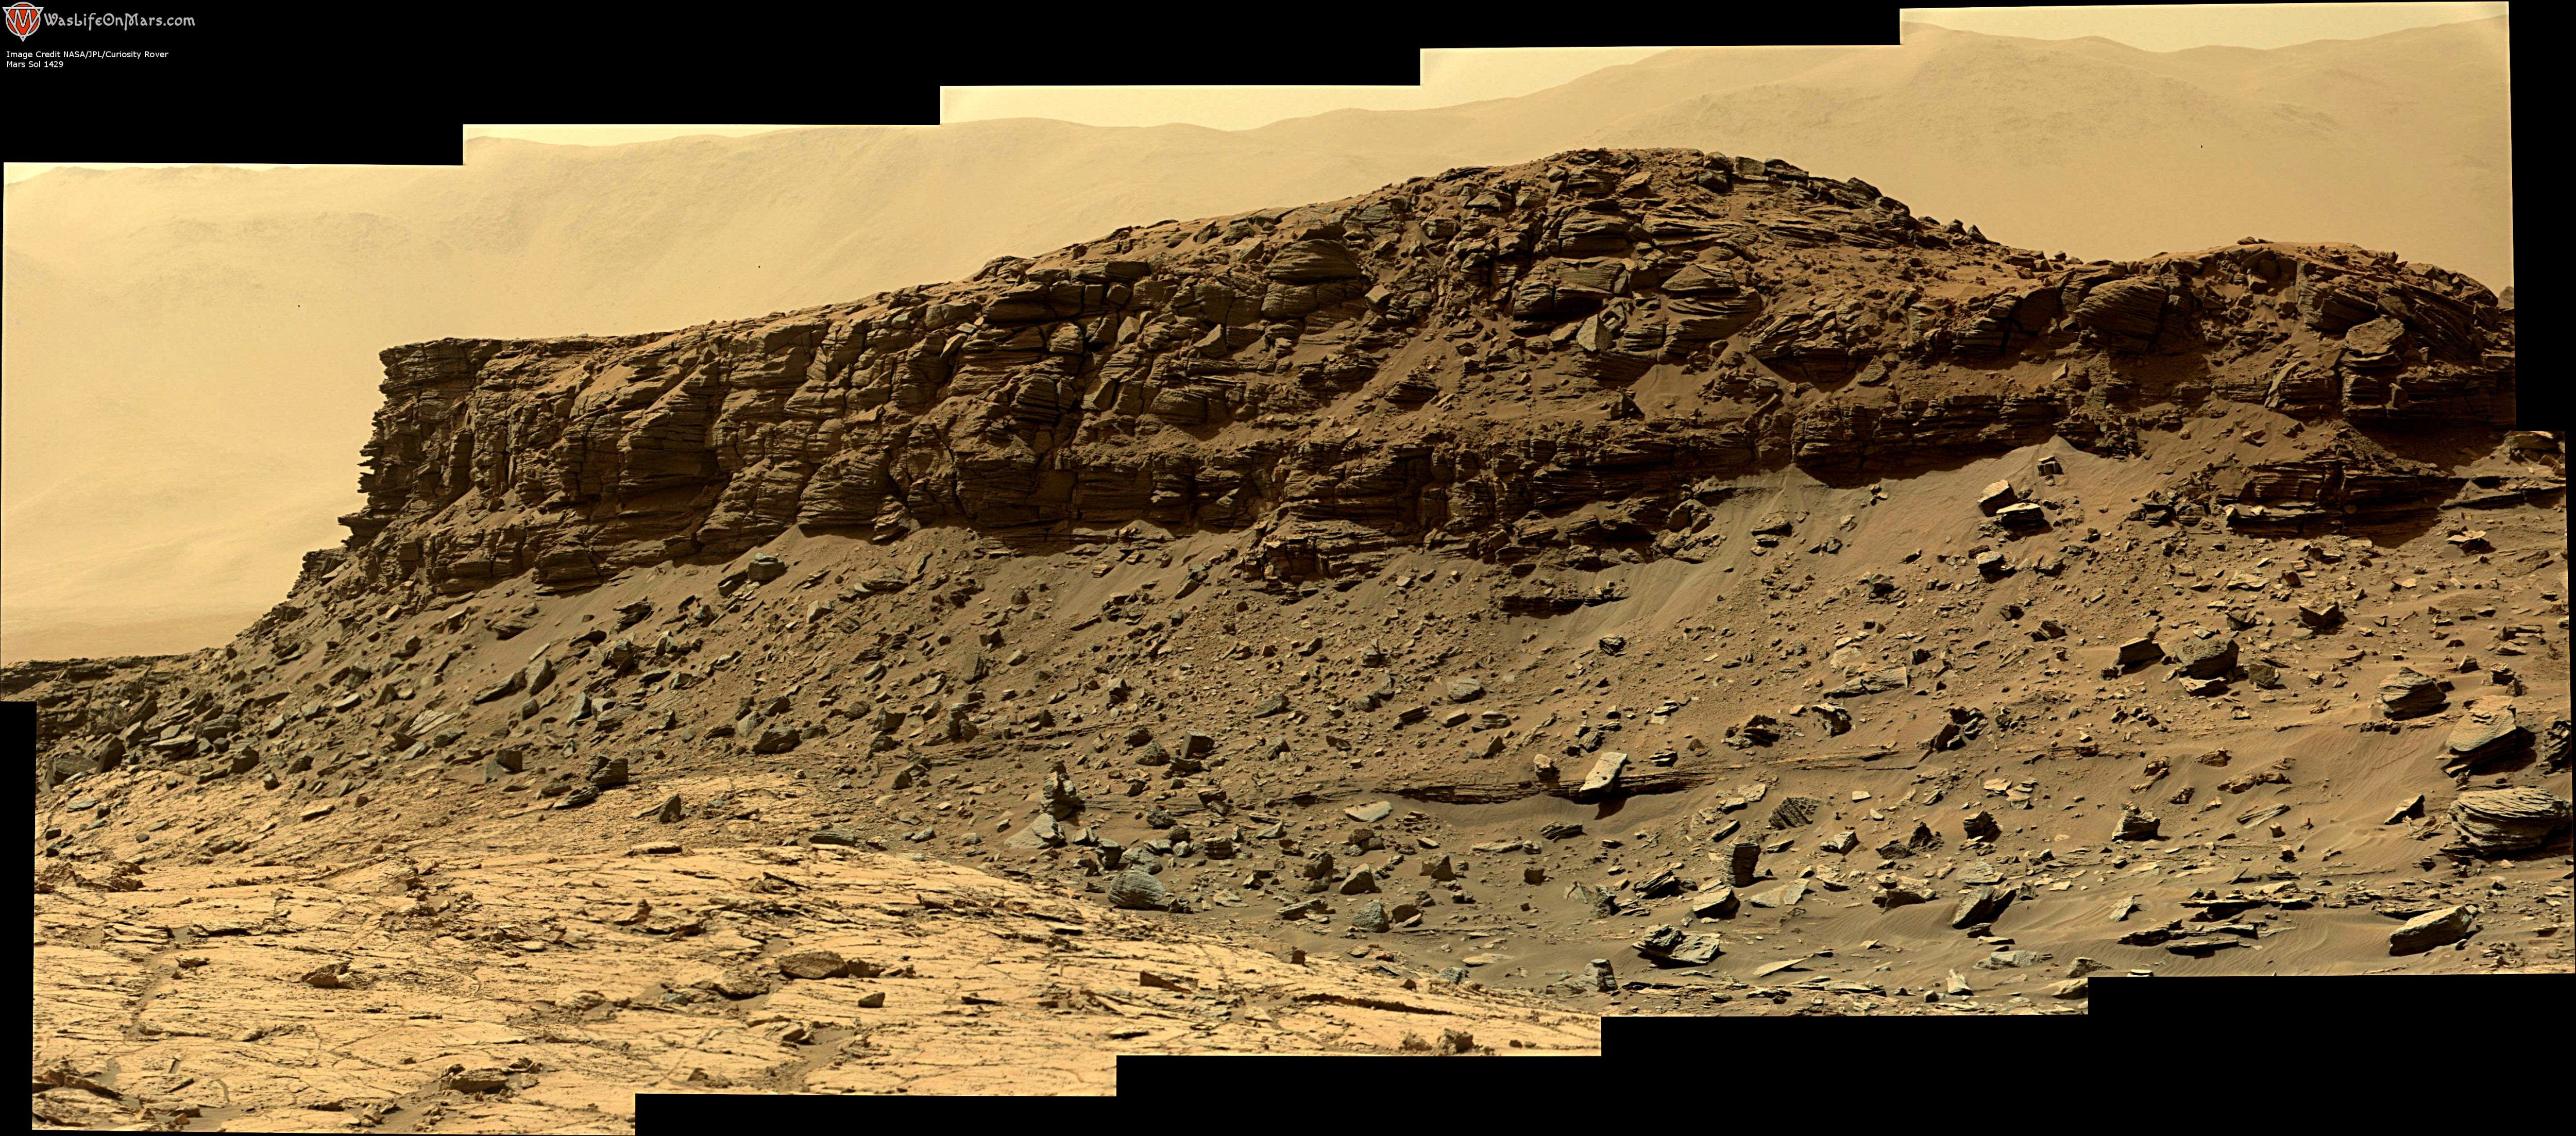 panoramic curiosity rover view 3e - sol 1429 - was life on mars